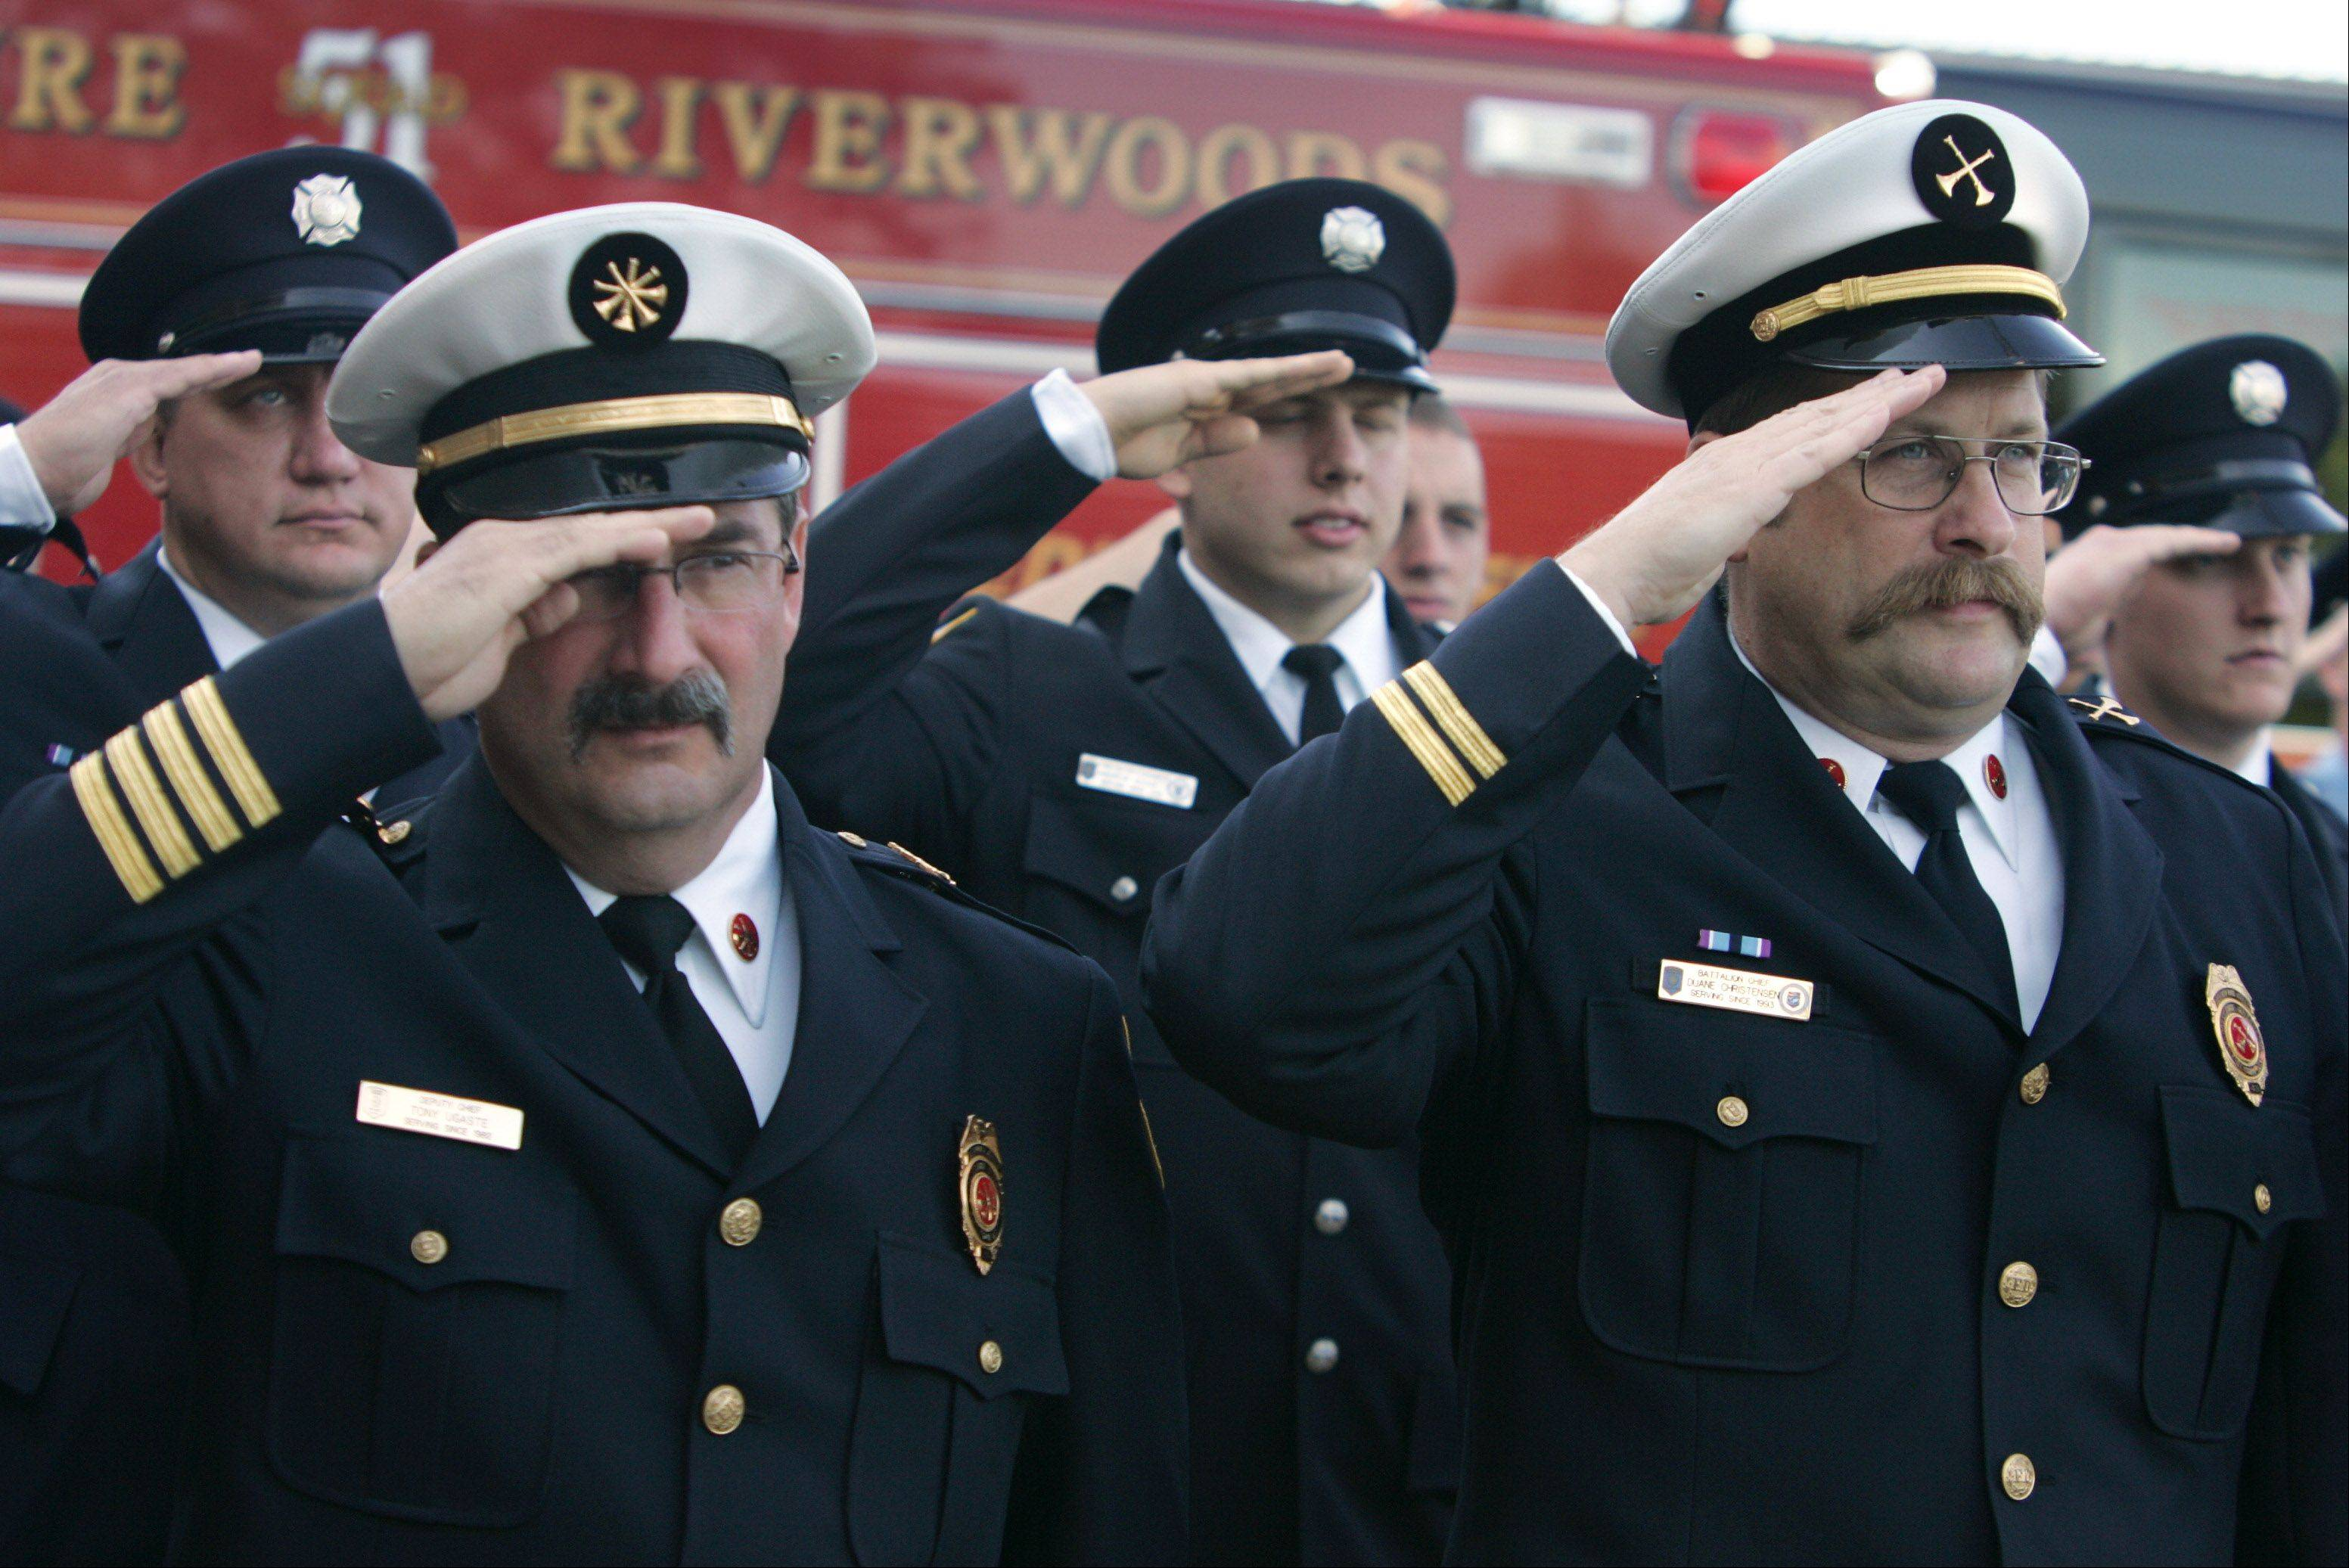 Deputy Chief Tony Ugaste, left, and Battallion Chief Duane Christensen salute during the raising of the flag at the Remember 9-1-1 Ceremony by the Lincolnshire-Riverwoods Fire Protection District Tuesday at the Schelter Road fire station.